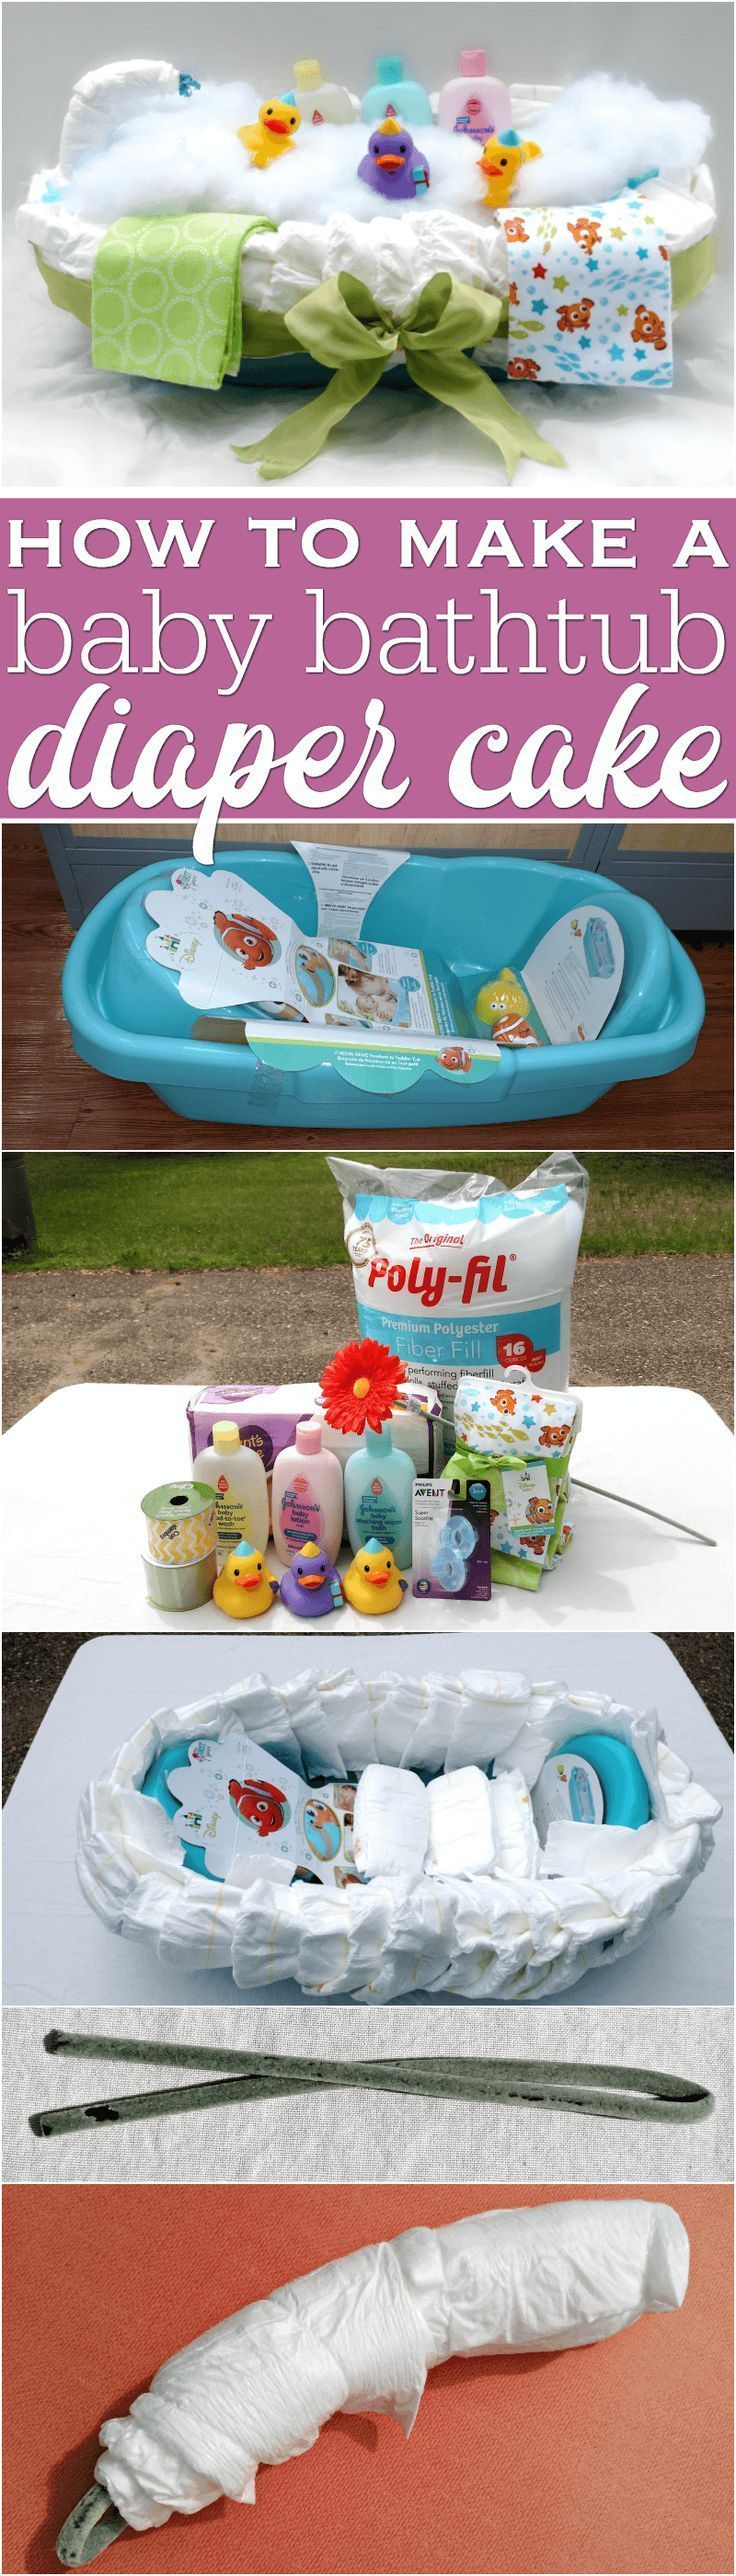 DIY your photo charms, 100% compatible with Pandora bracelets. Make your gifts special. Make your life special! How to make a baby bathtub diaper cake | tutorial | DIY | easy diaper cakes | no-roll diaper cakes | instructions | directions